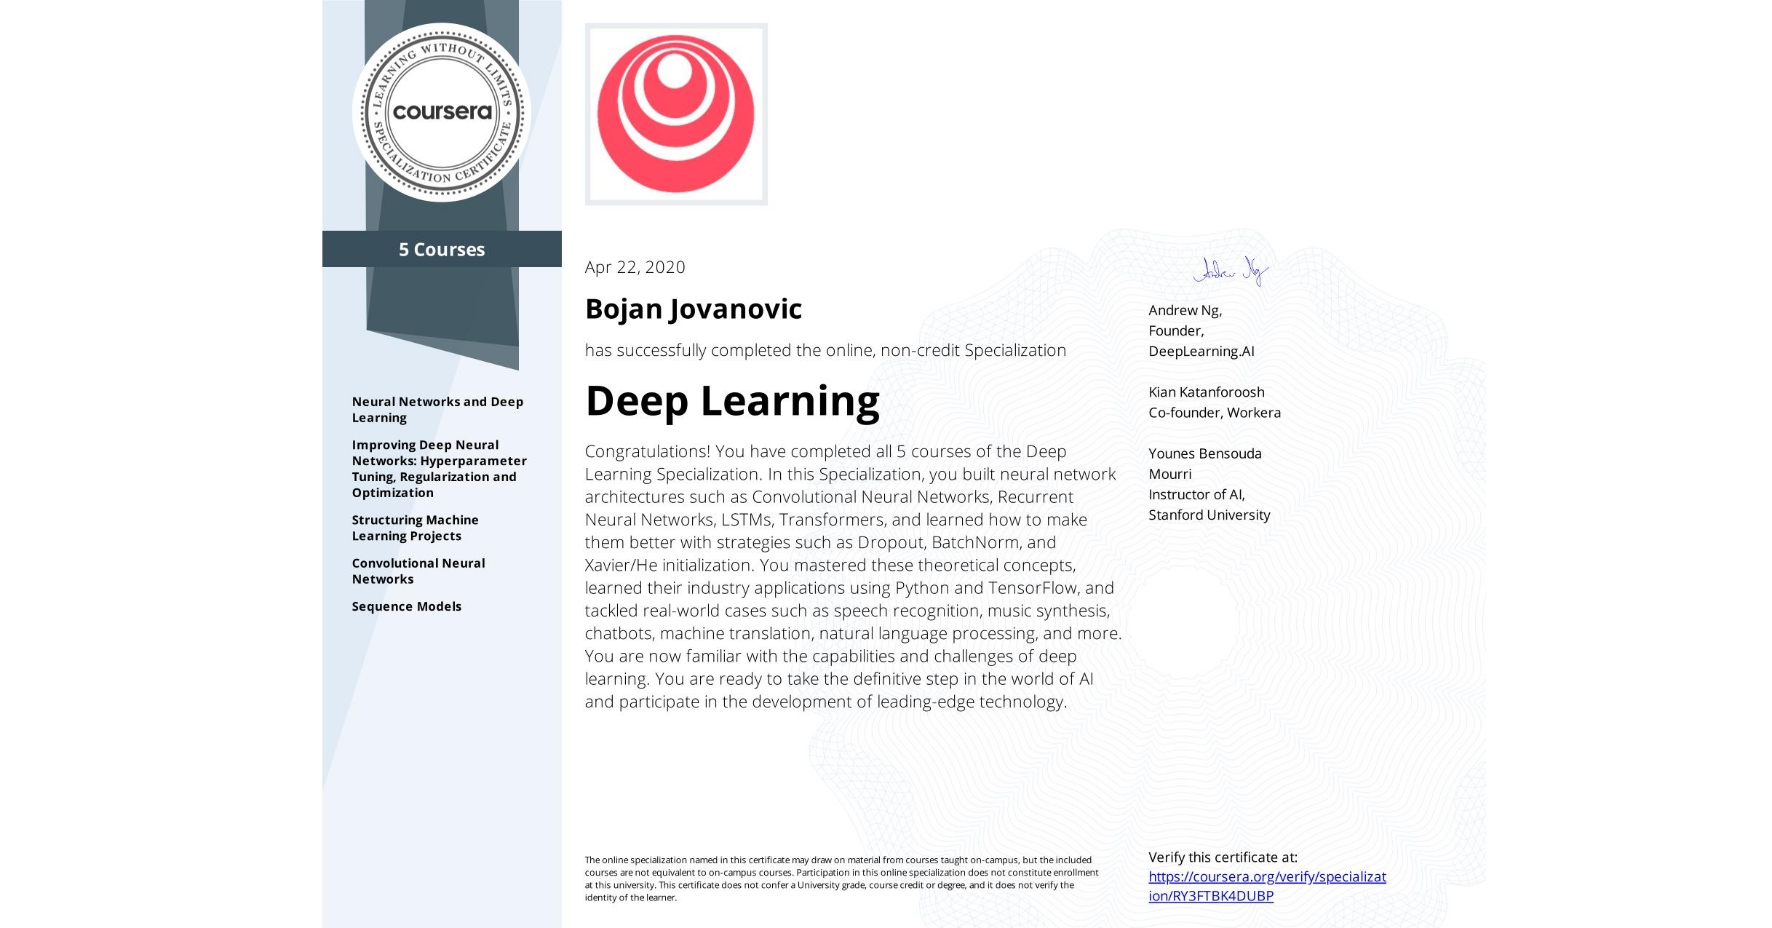 View certificate for Bojan Jovanovic, Deep Learning, offered through Coursera. Congratulations! You have completed all 5 courses of the Deep Learning Specialization.  In this Specialization, you built neural network architectures such as Convolutional Neural Networks, Recurrent Neural Networks, LSTMs, Transformers, and learned how to make them better with strategies such as Dropout, BatchNorm, and Xavier/He initialization. You mastered these theoretical concepts, learned their industry applications using Python and TensorFlow, and tackled real-world cases such as speech recognition, music synthesis, chatbots, machine translation, natural language processing, and more.  You are now familiar with the capabilities and challenges of deep learning. You are ready to take the definitive step in the world of AI and participate in the development of leading-edge technology.